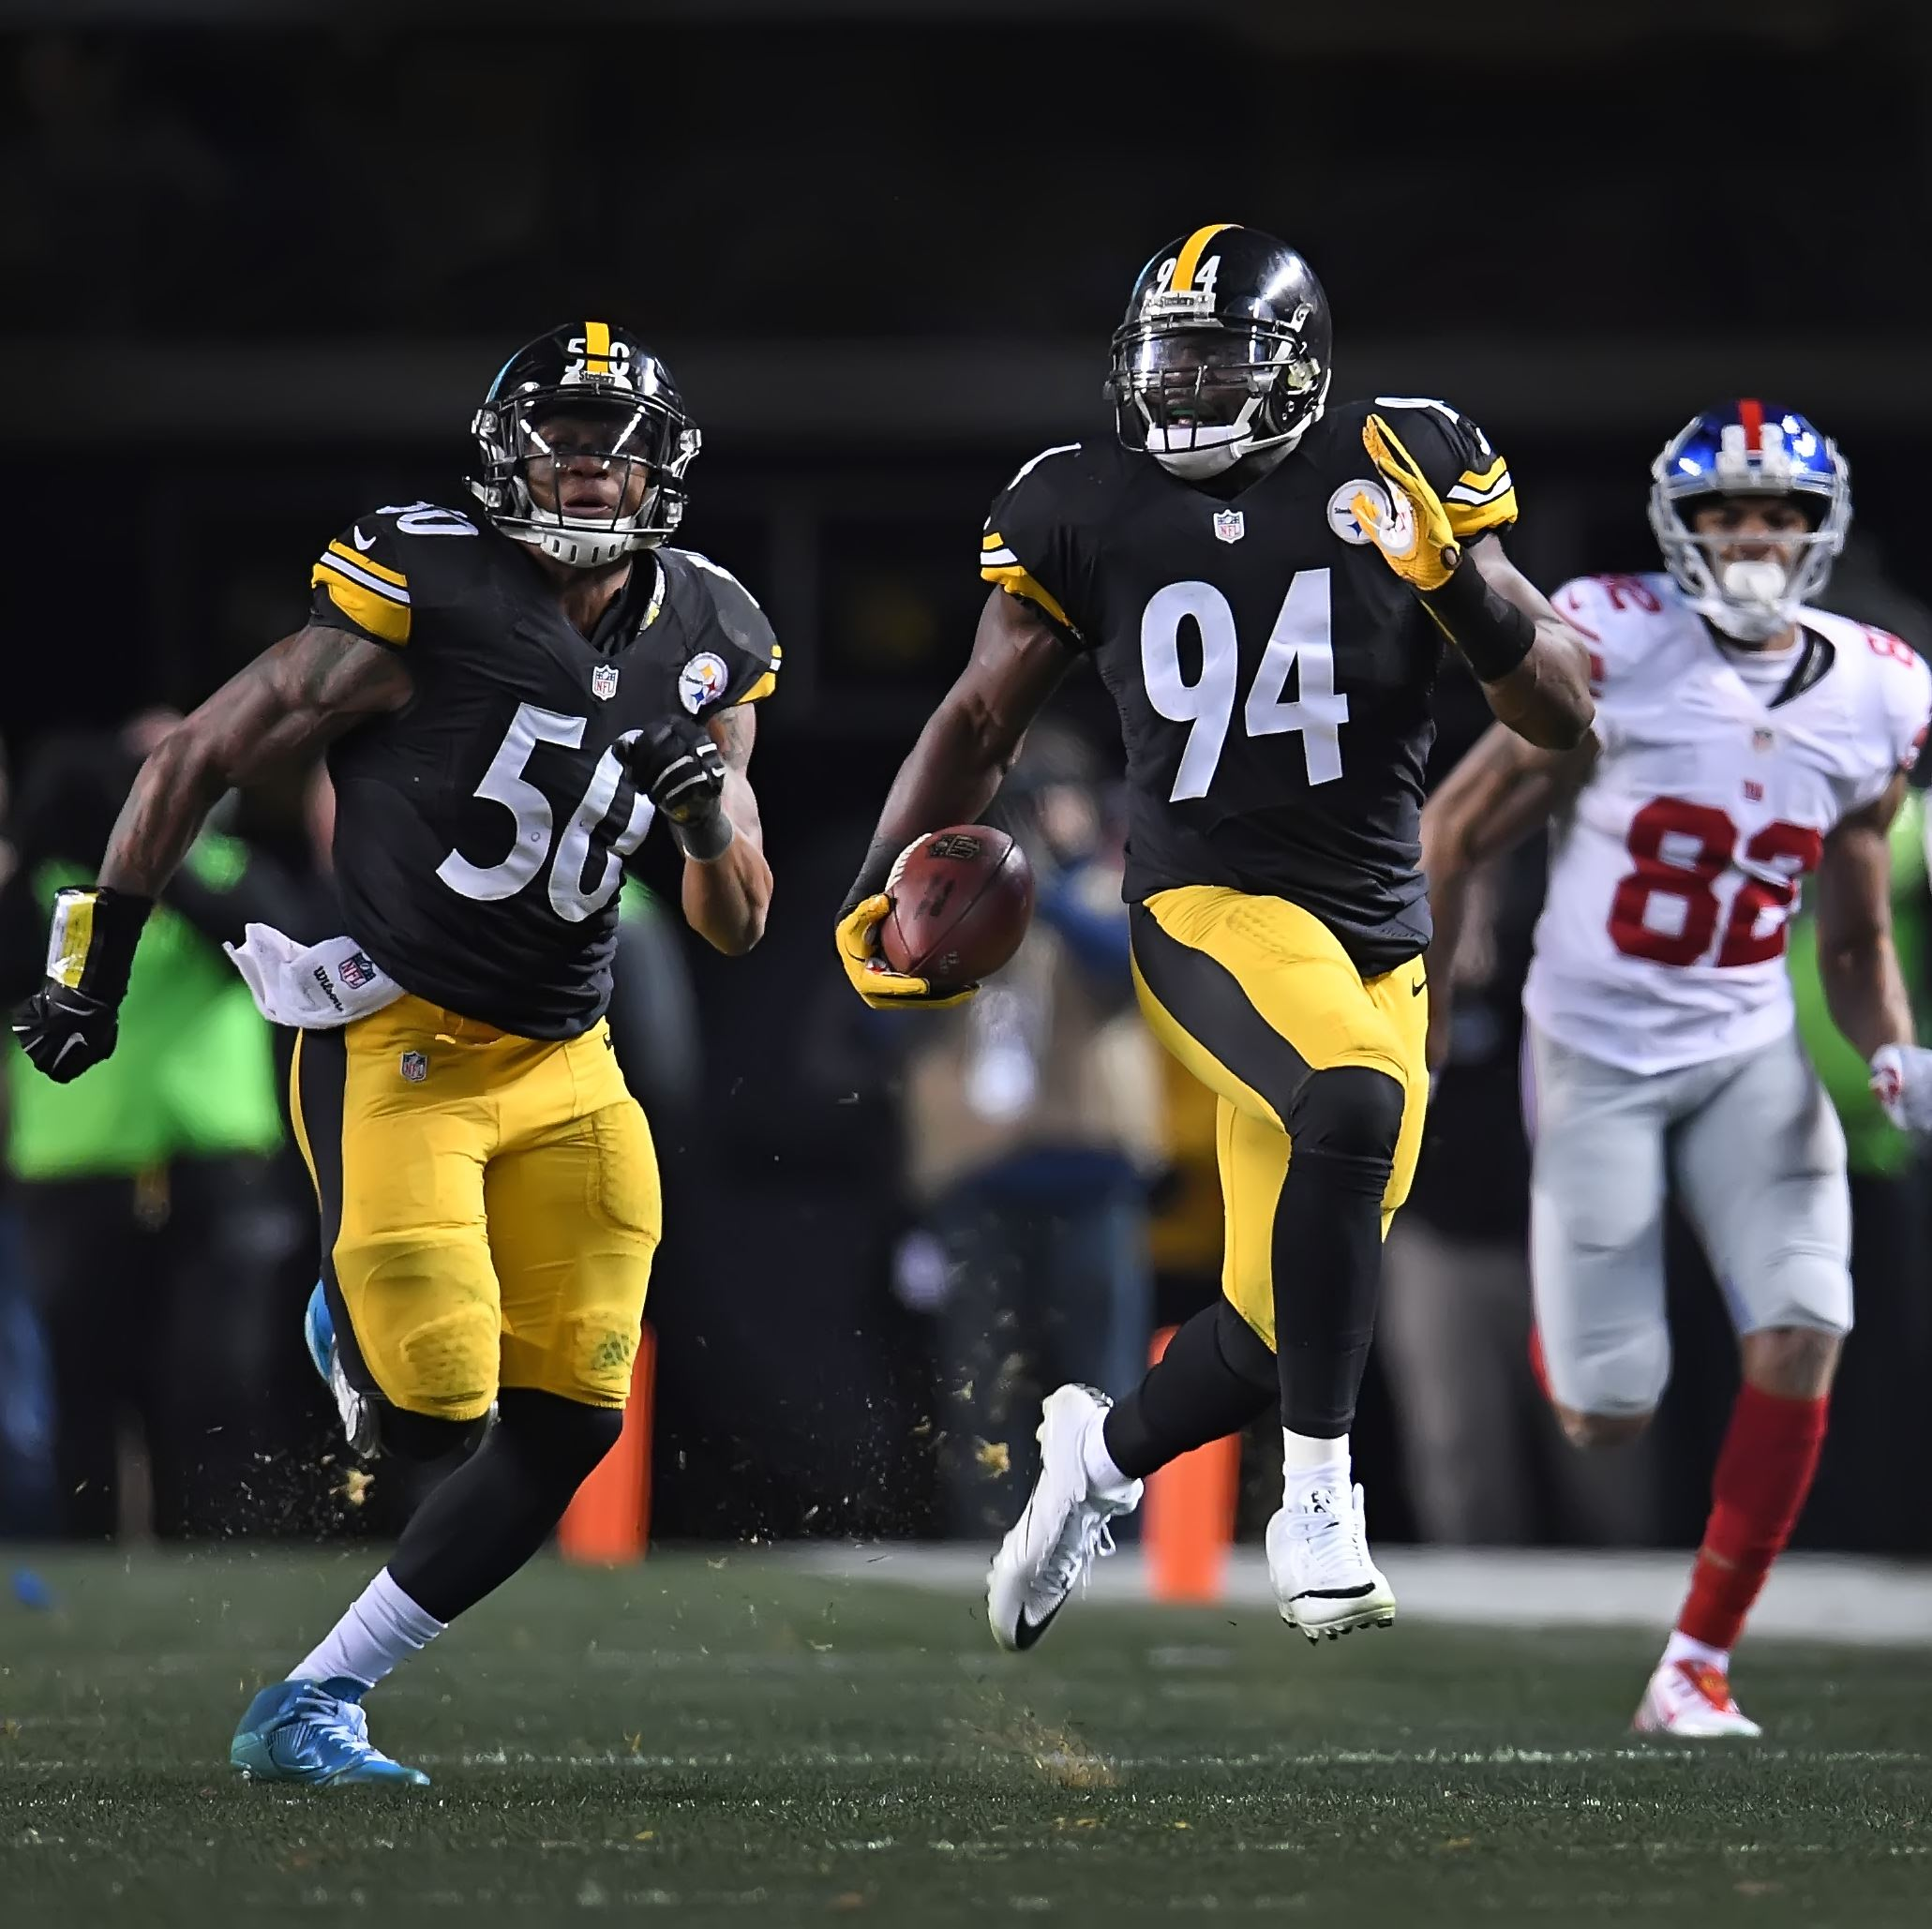 Lawrence Timmons, Steelers 2017 free agents, Ryan Shazier, Steelers vs Giants, Lawrence Timmons interception, Roger Lewis